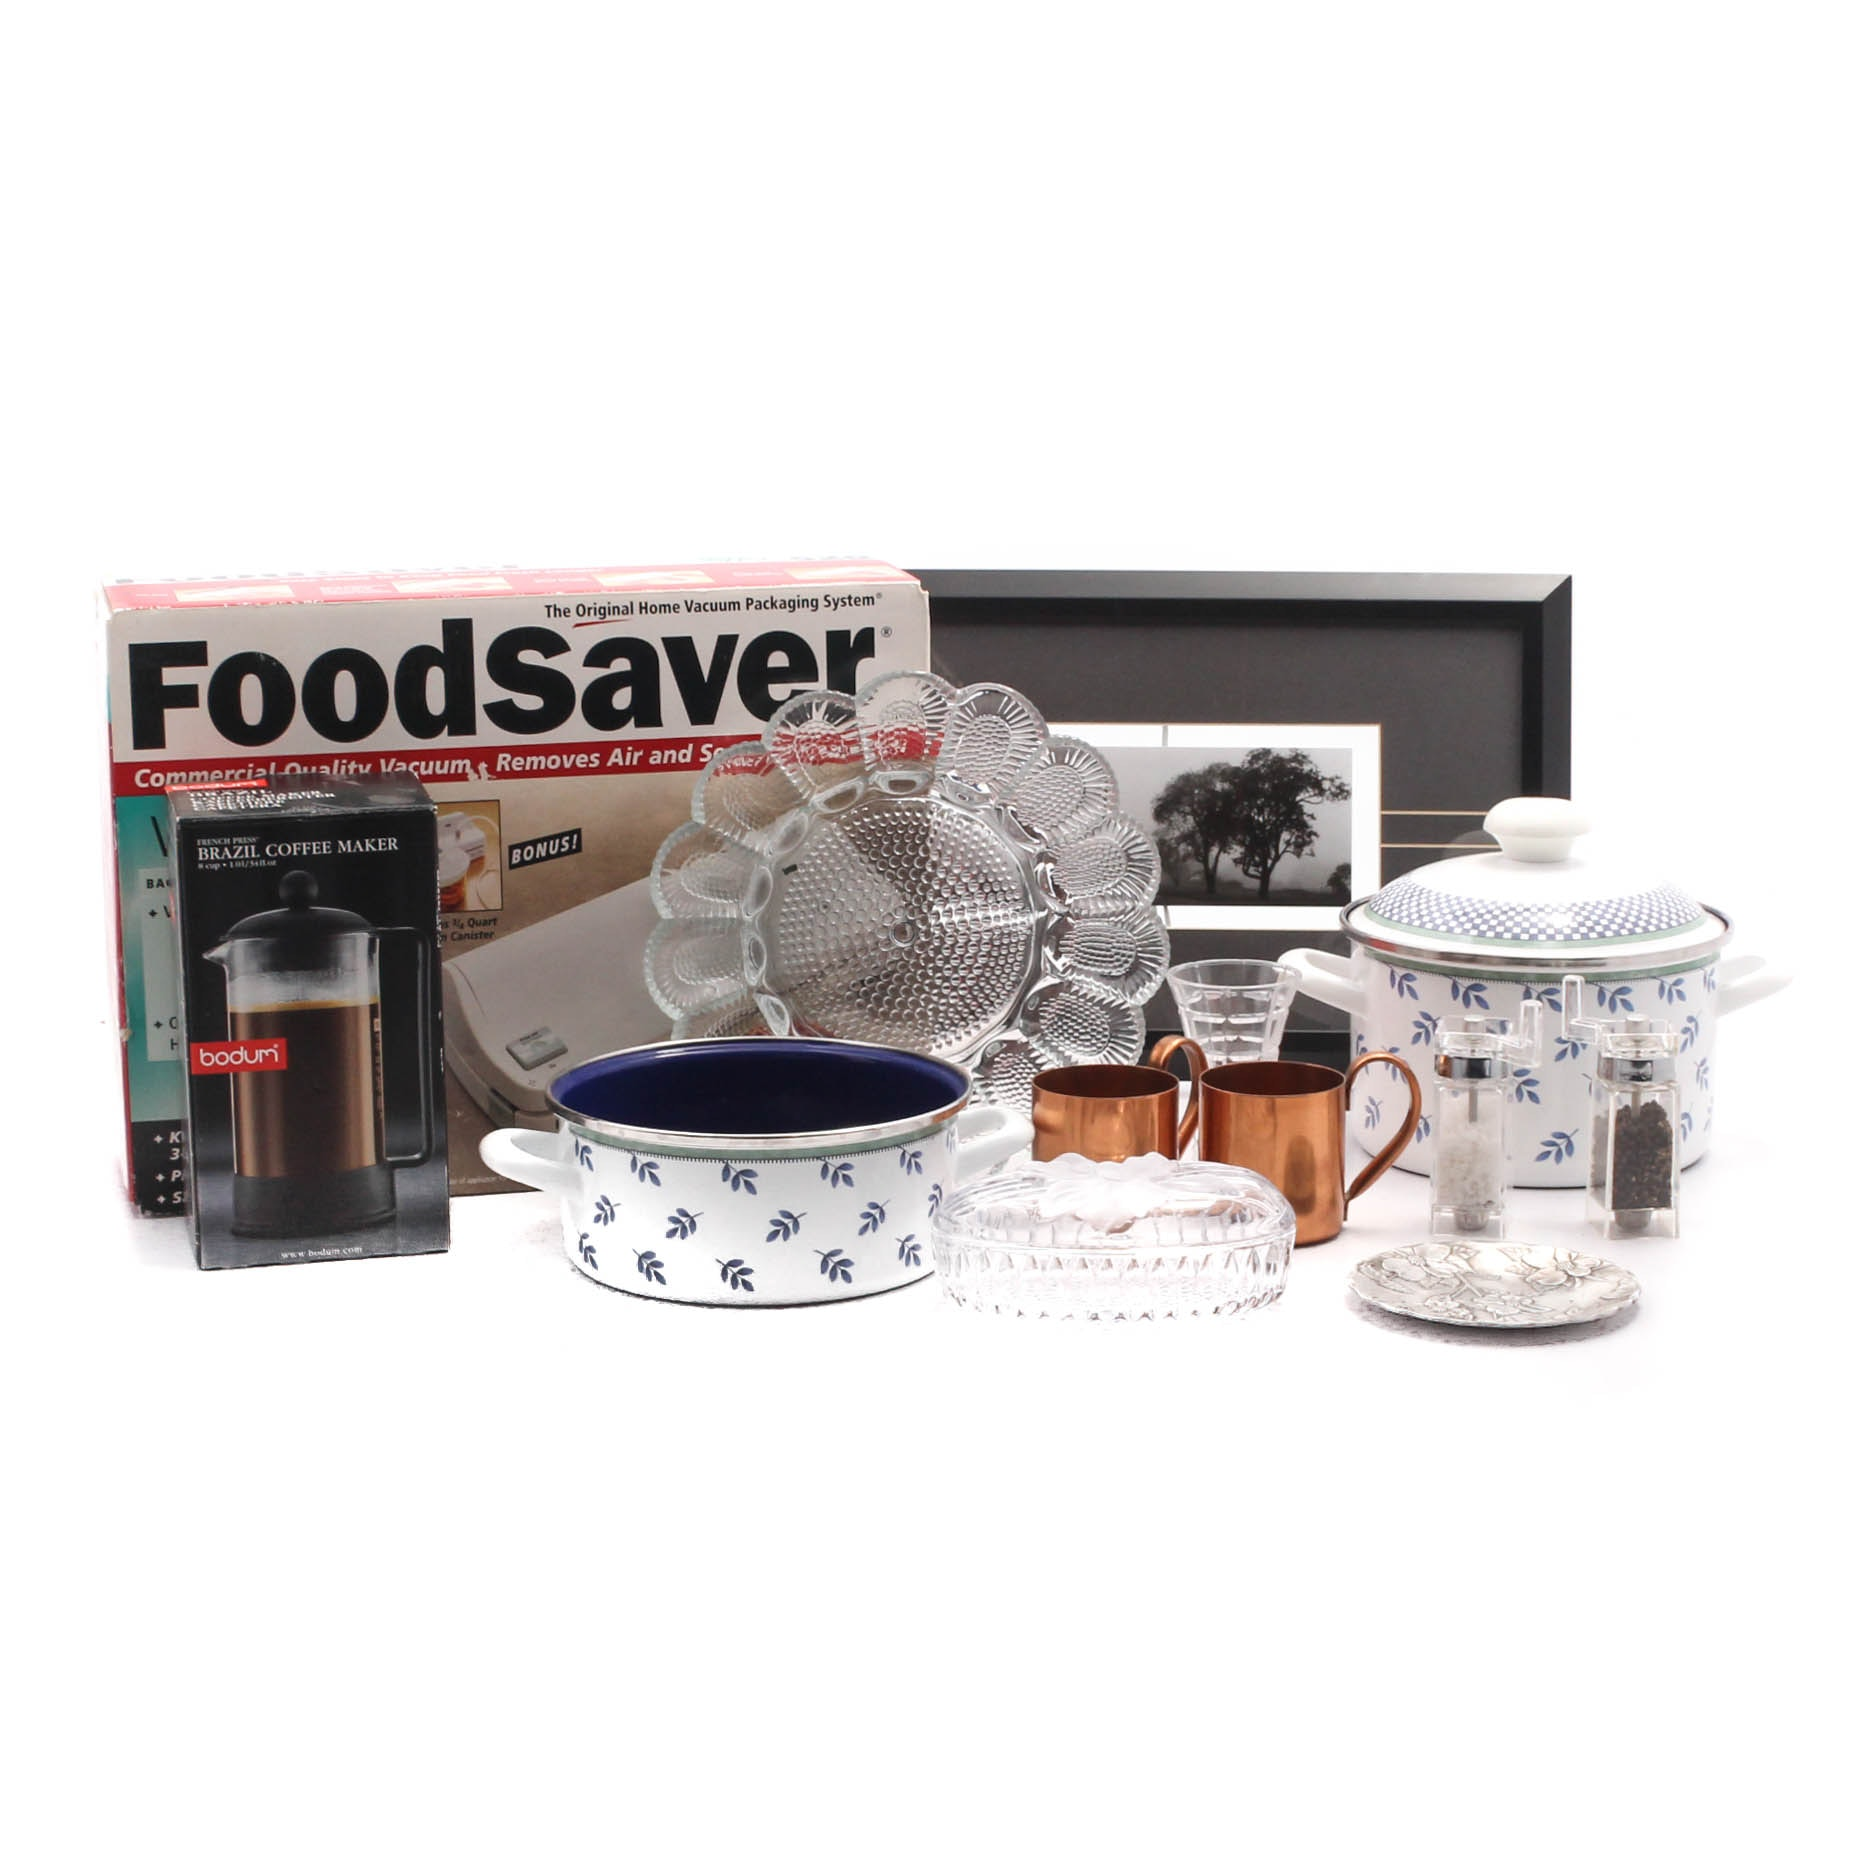 Kitchenalia Featuring Foodsaver and Villeroy & Boch